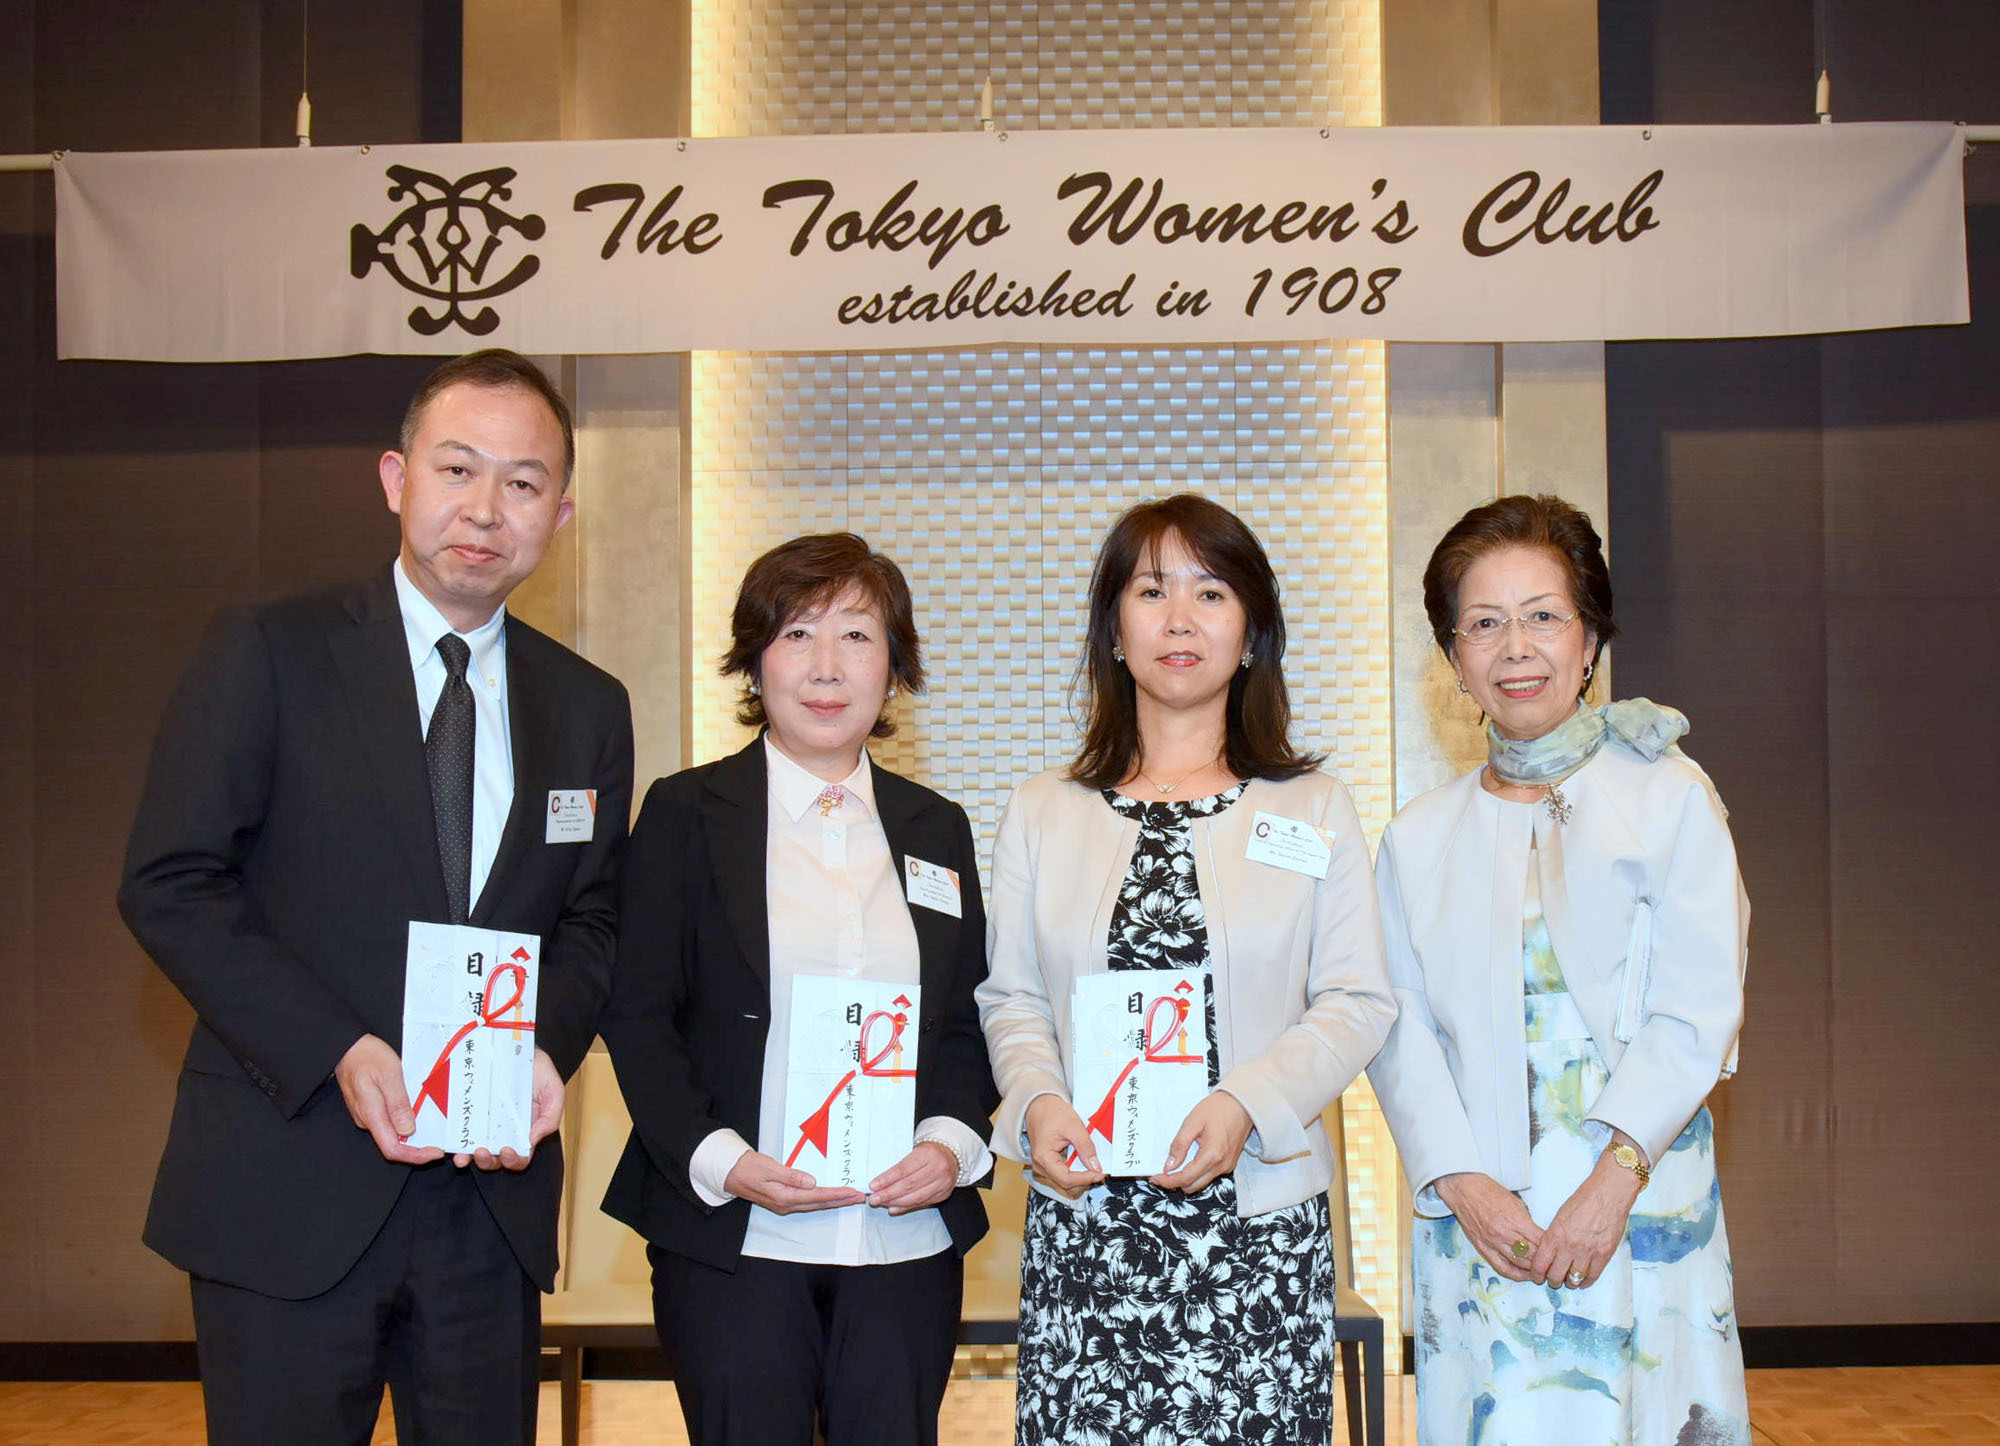 Koji Ogawa (left), representative of USNOVA, Noriko Shiota (second from left), deputy head of the Salvation Army Japan's Sekoryo orphanage, and Sayuri Daimon (third from left), managing editor of The Japan Times, receive donations from Mitsuko Konoma, president of the Tokyo Women's Club, at the Capitol Hotel Tokyu on June 6. The women's club donated ¥200,000 to The Japan Times Readers' Fund at the club's 108th annual luncheon. |  SATOKO KAWASAKI